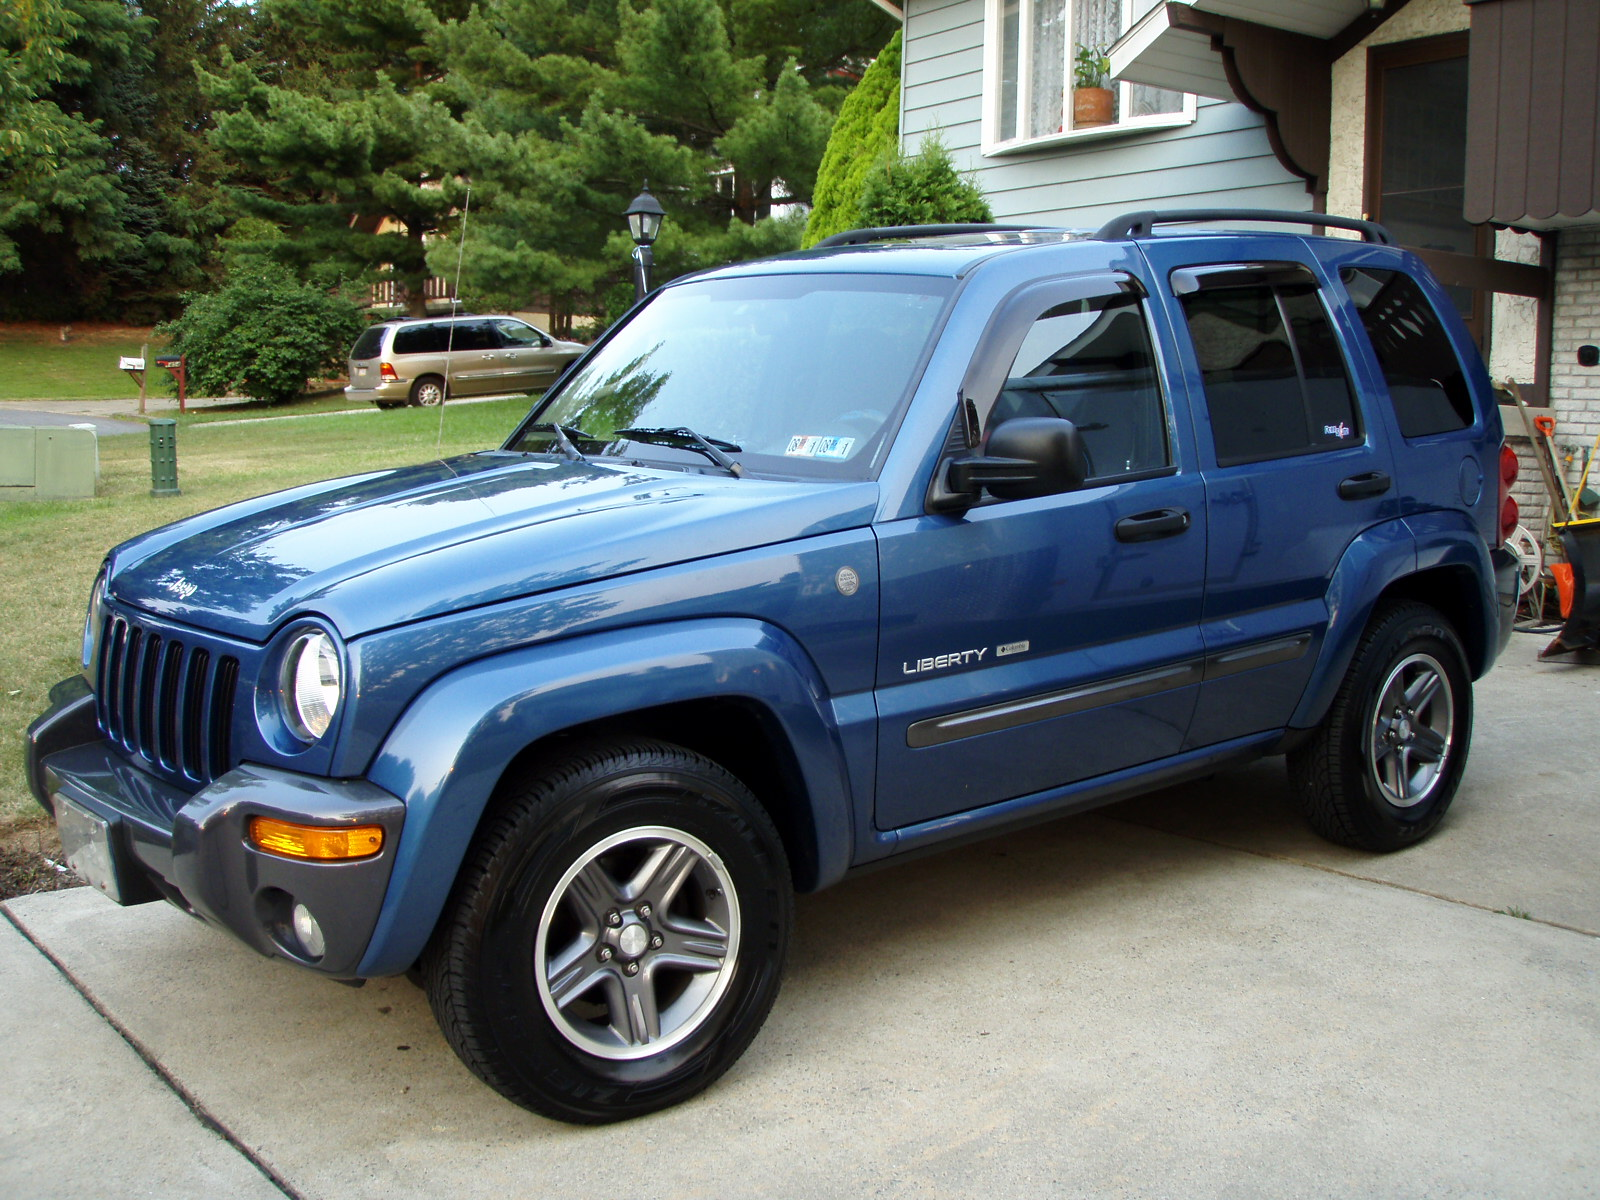 jeep liberty related images start 50 weili automotive network. Black Bedroom Furniture Sets. Home Design Ideas